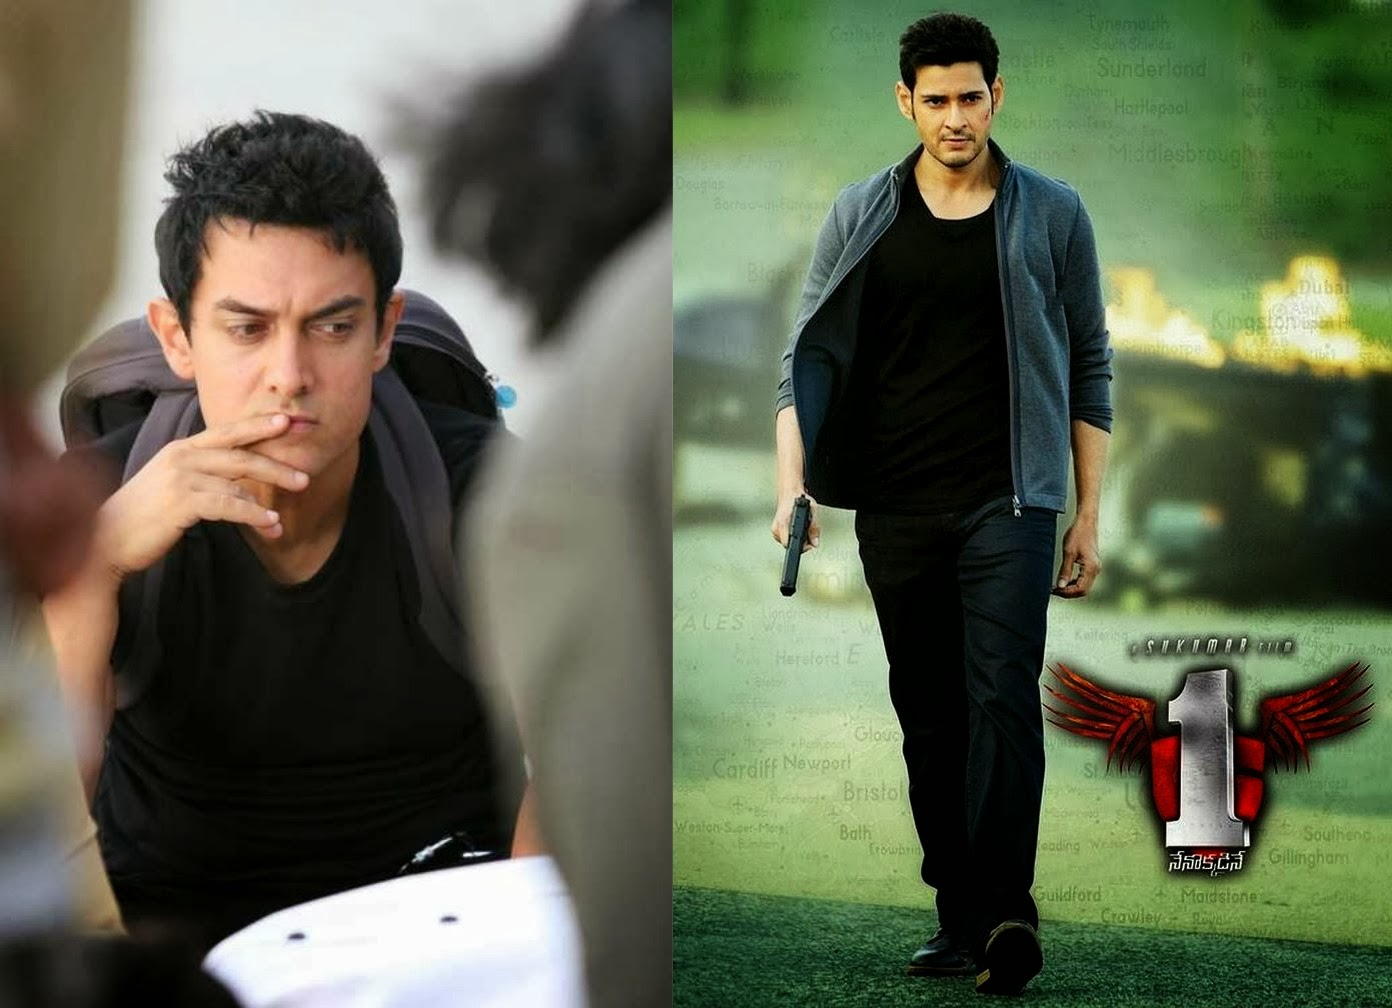 Aamir Khan to remake Mahesh Babu 1, Aamir Khan to remake Mahesh Babu 1 Nenokkadine, Aamir Khan to remake 1, Aamir Khan to remake 1 Nenokkadine